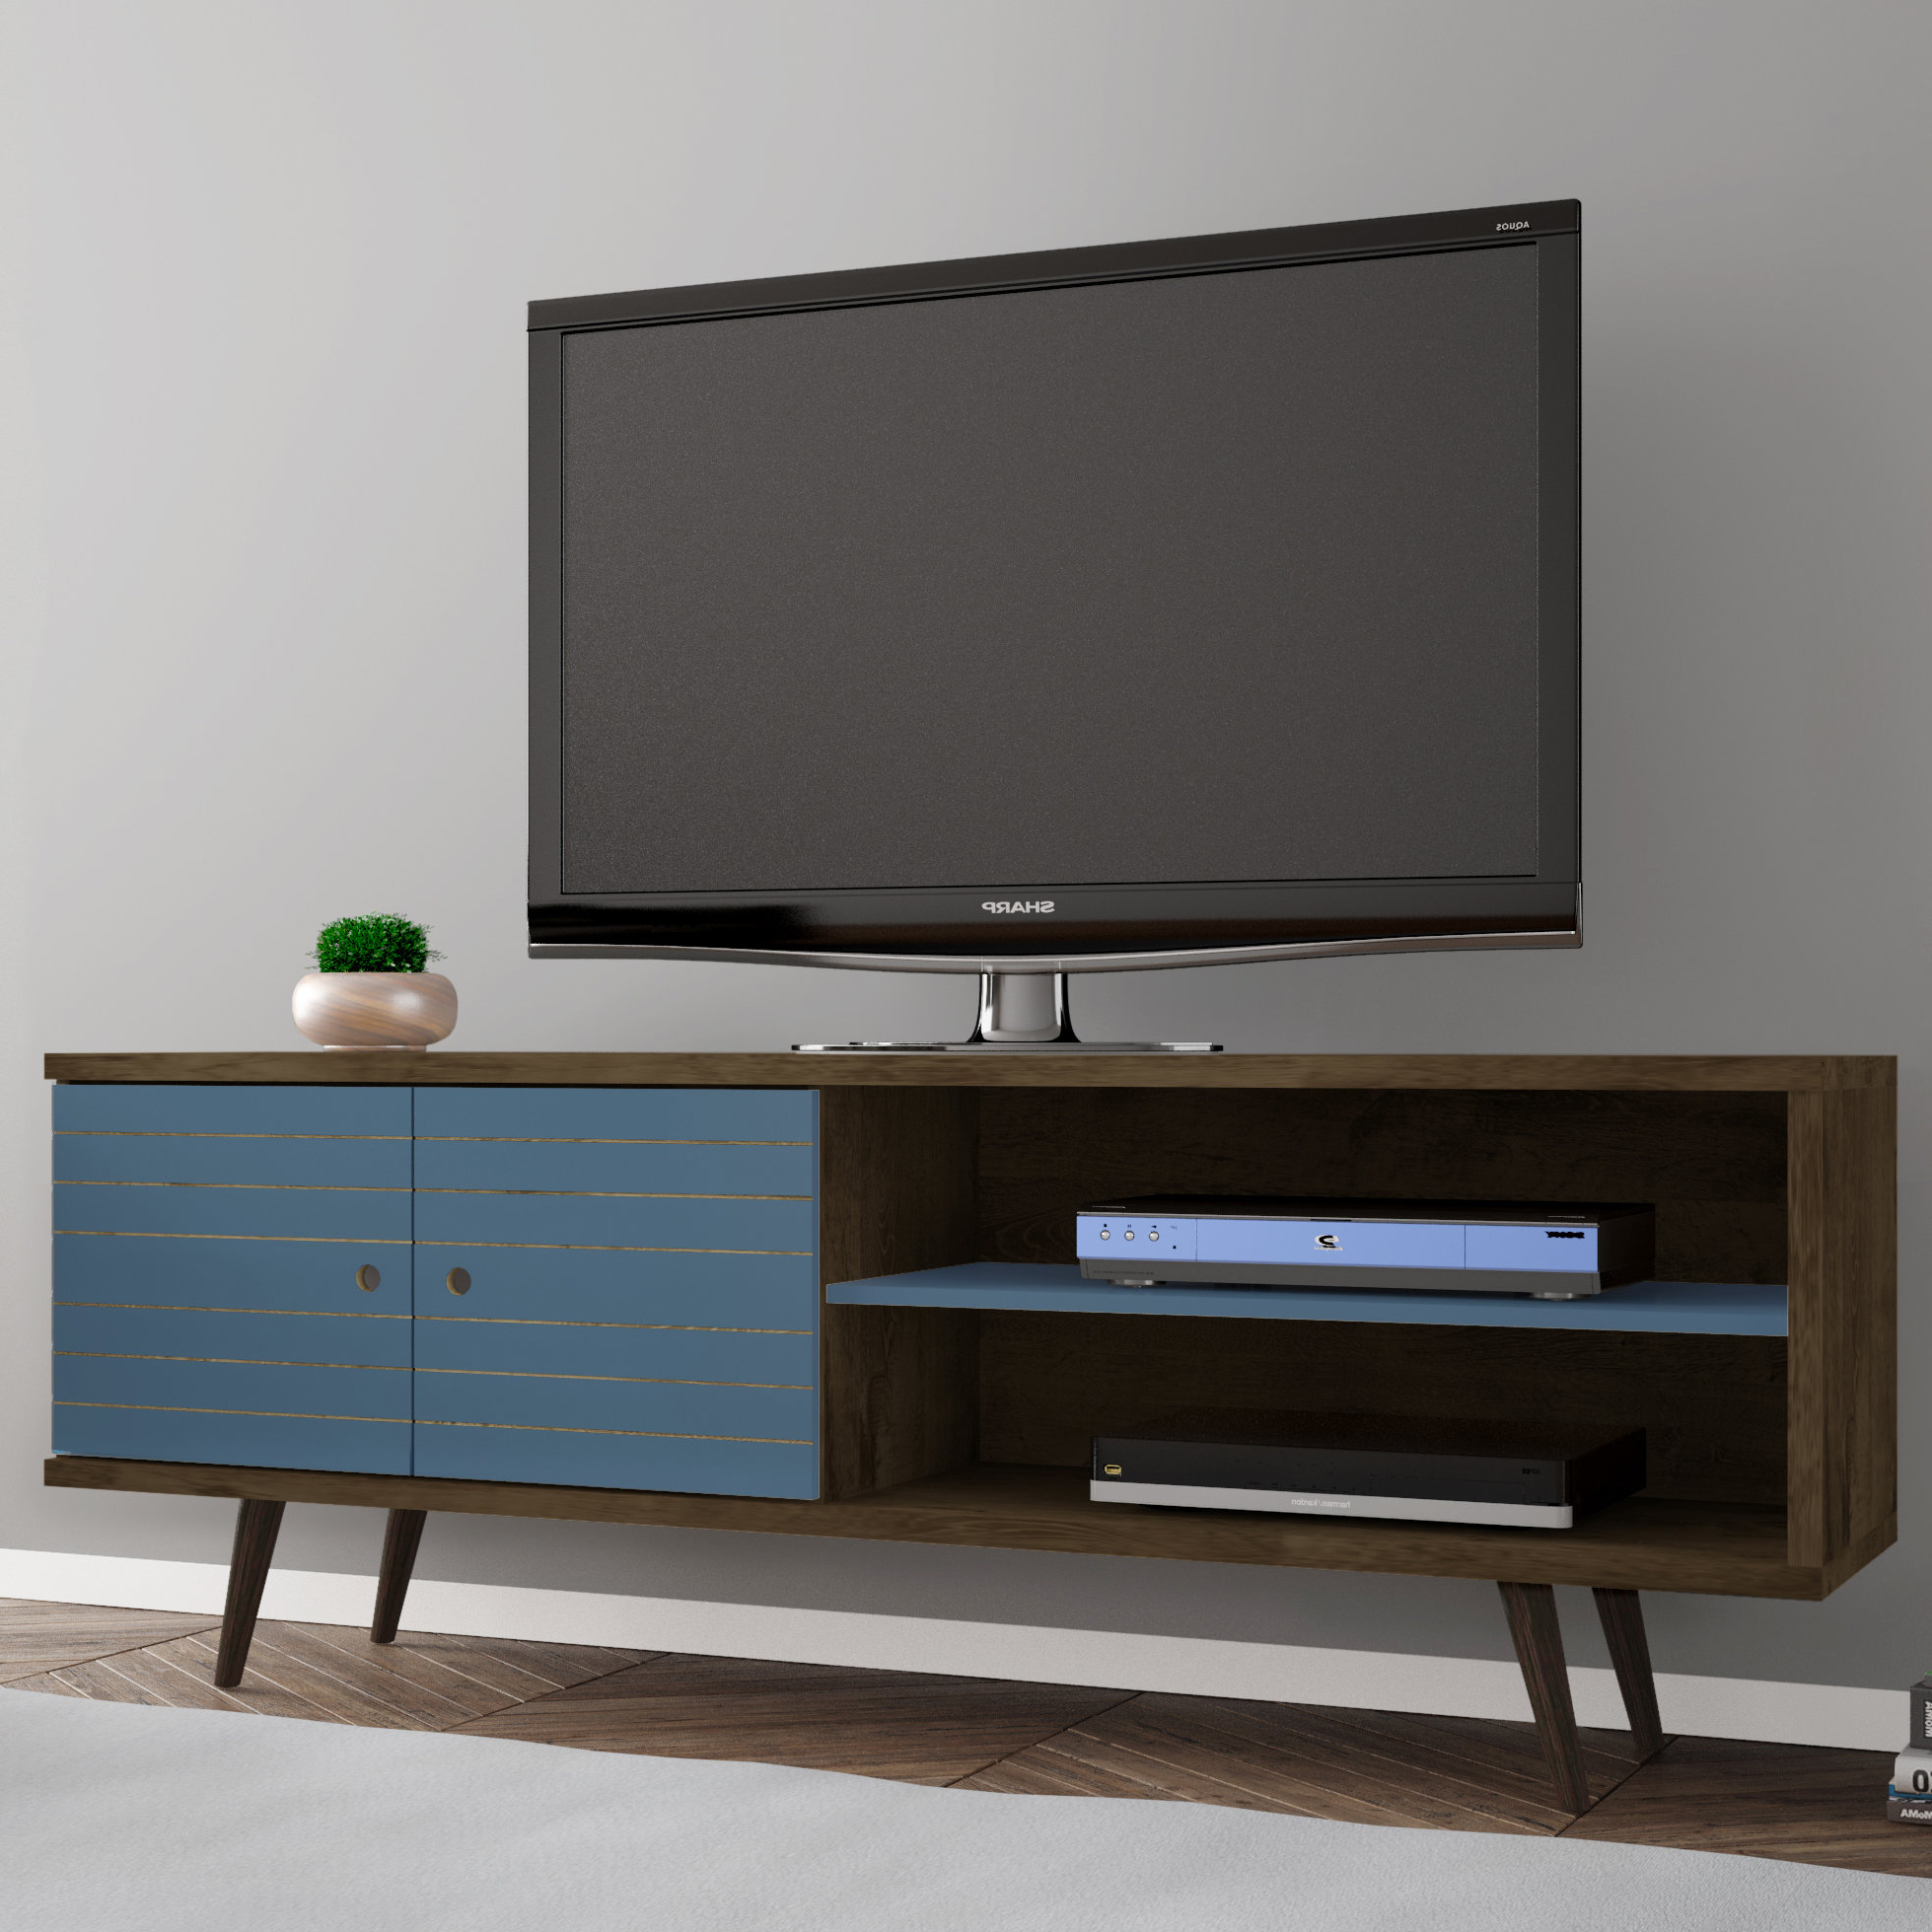 Blue Tv Stands You'll Love | Wayfair Inside Century Blue 60 Inch Tv Stands (View 3 of 20)